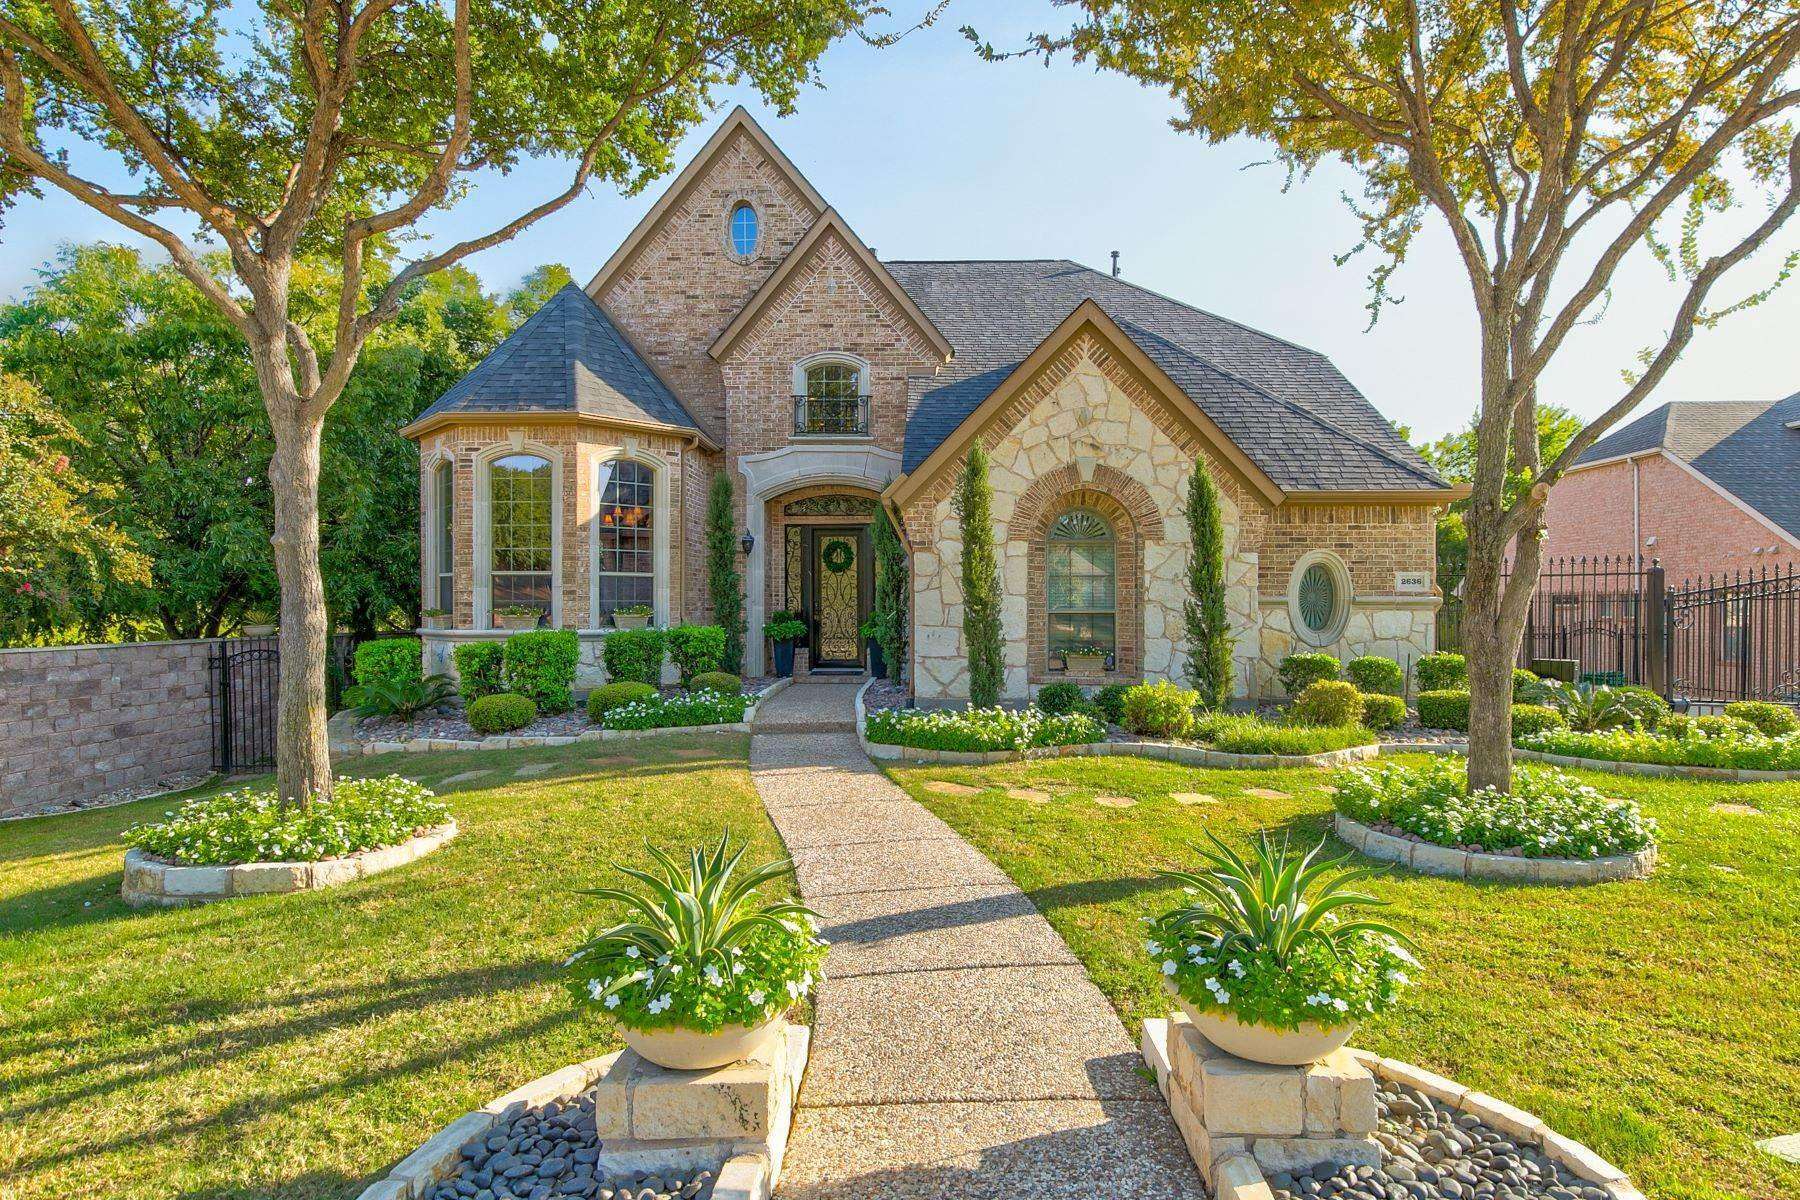 Single Family Homes for Sale at 2636 Elmbrook Drive, Carrollton, TX, 75010 2636 Elmbrook Drive Carrollton, Texas 75010 United States